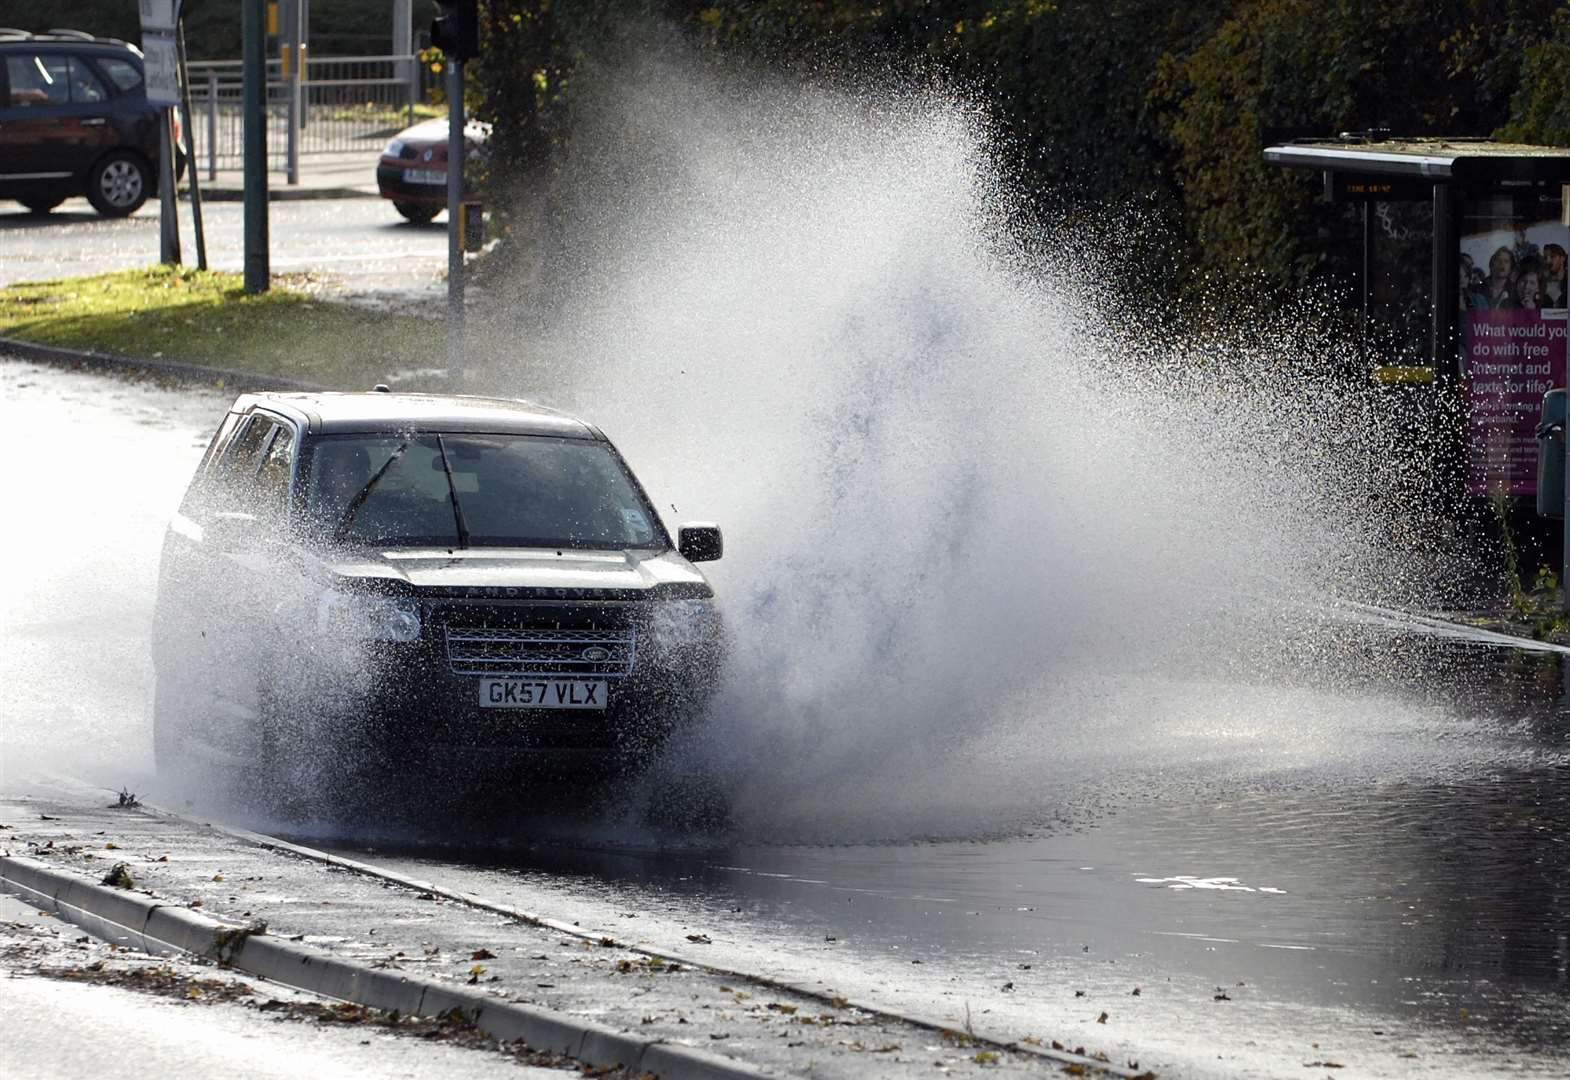 Weather warning as heavy rain hits Kent